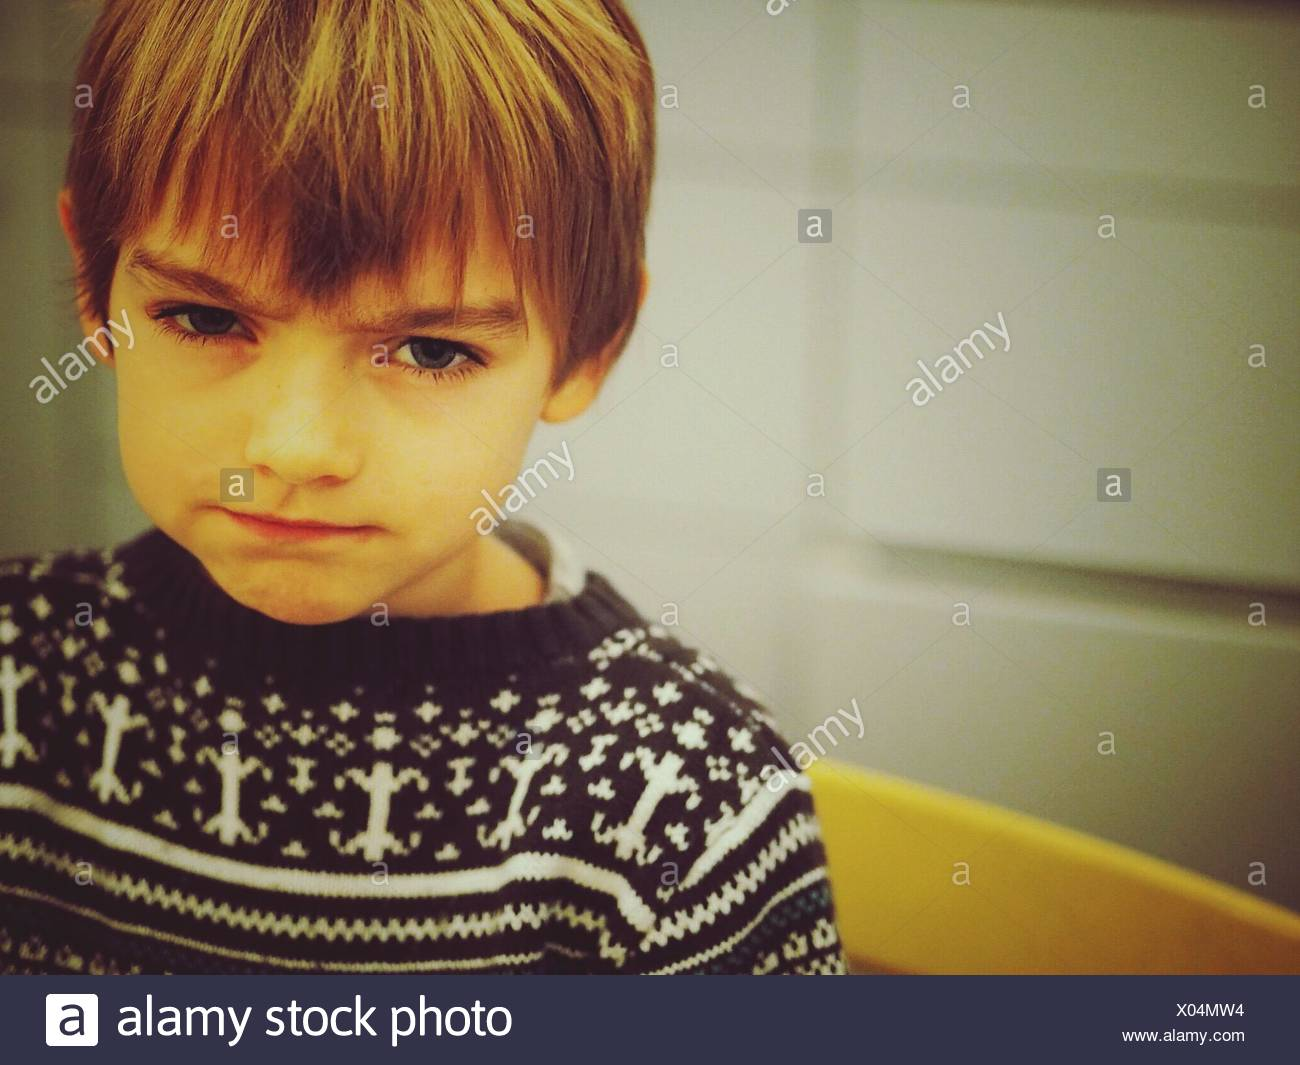 Portrait Of Angry Boy Making Face - Stock Image